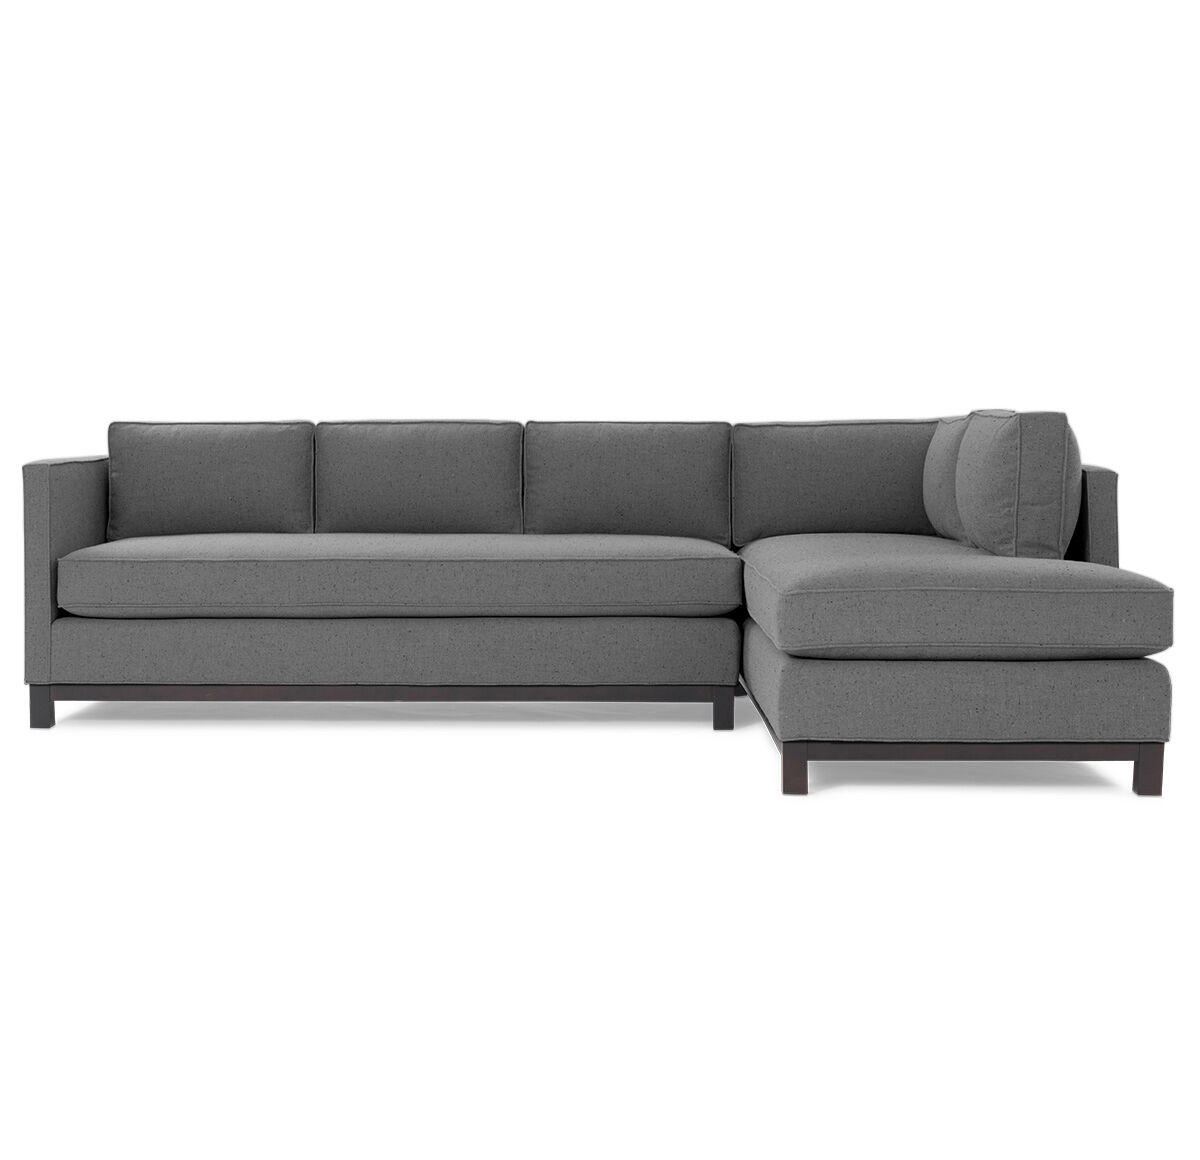 mitc gold hunter sofa dwell studio review clifton sectional by bob williams